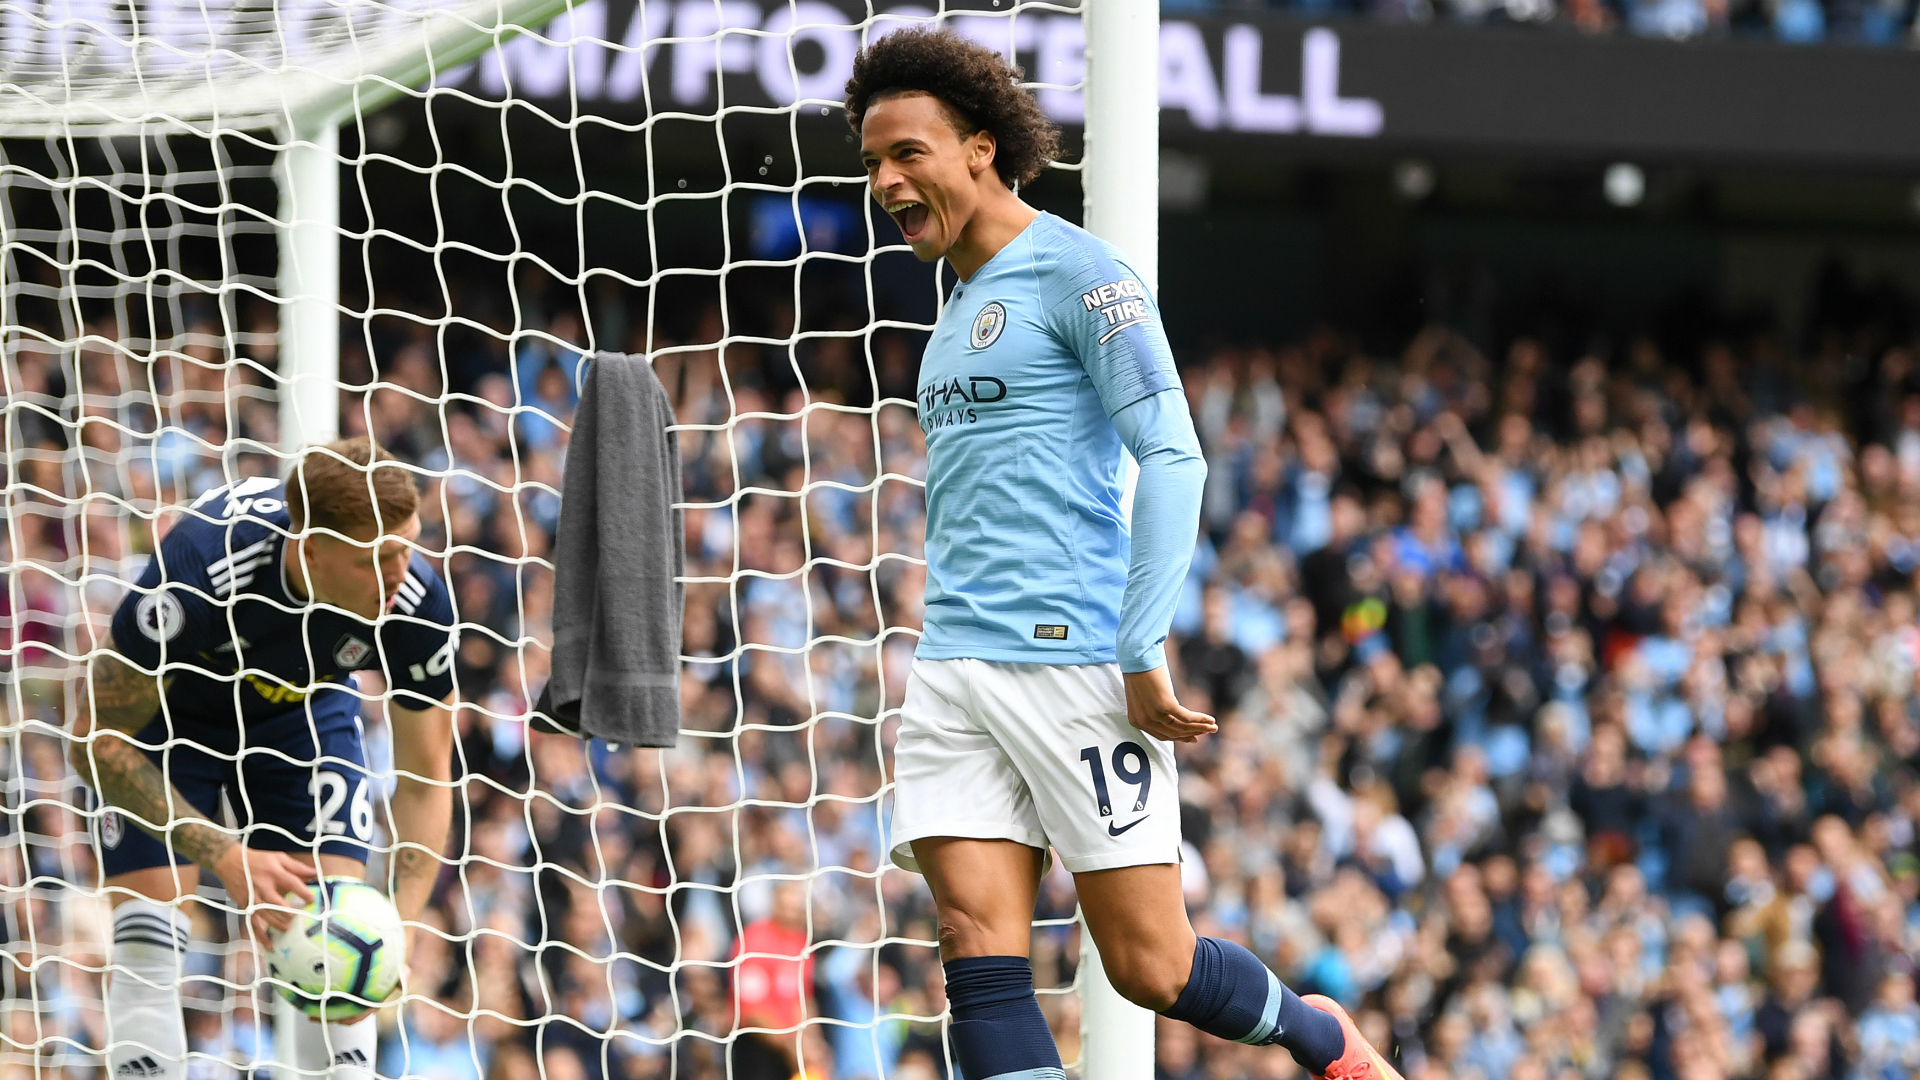 Man City working on new deal for Sane – Guardiola